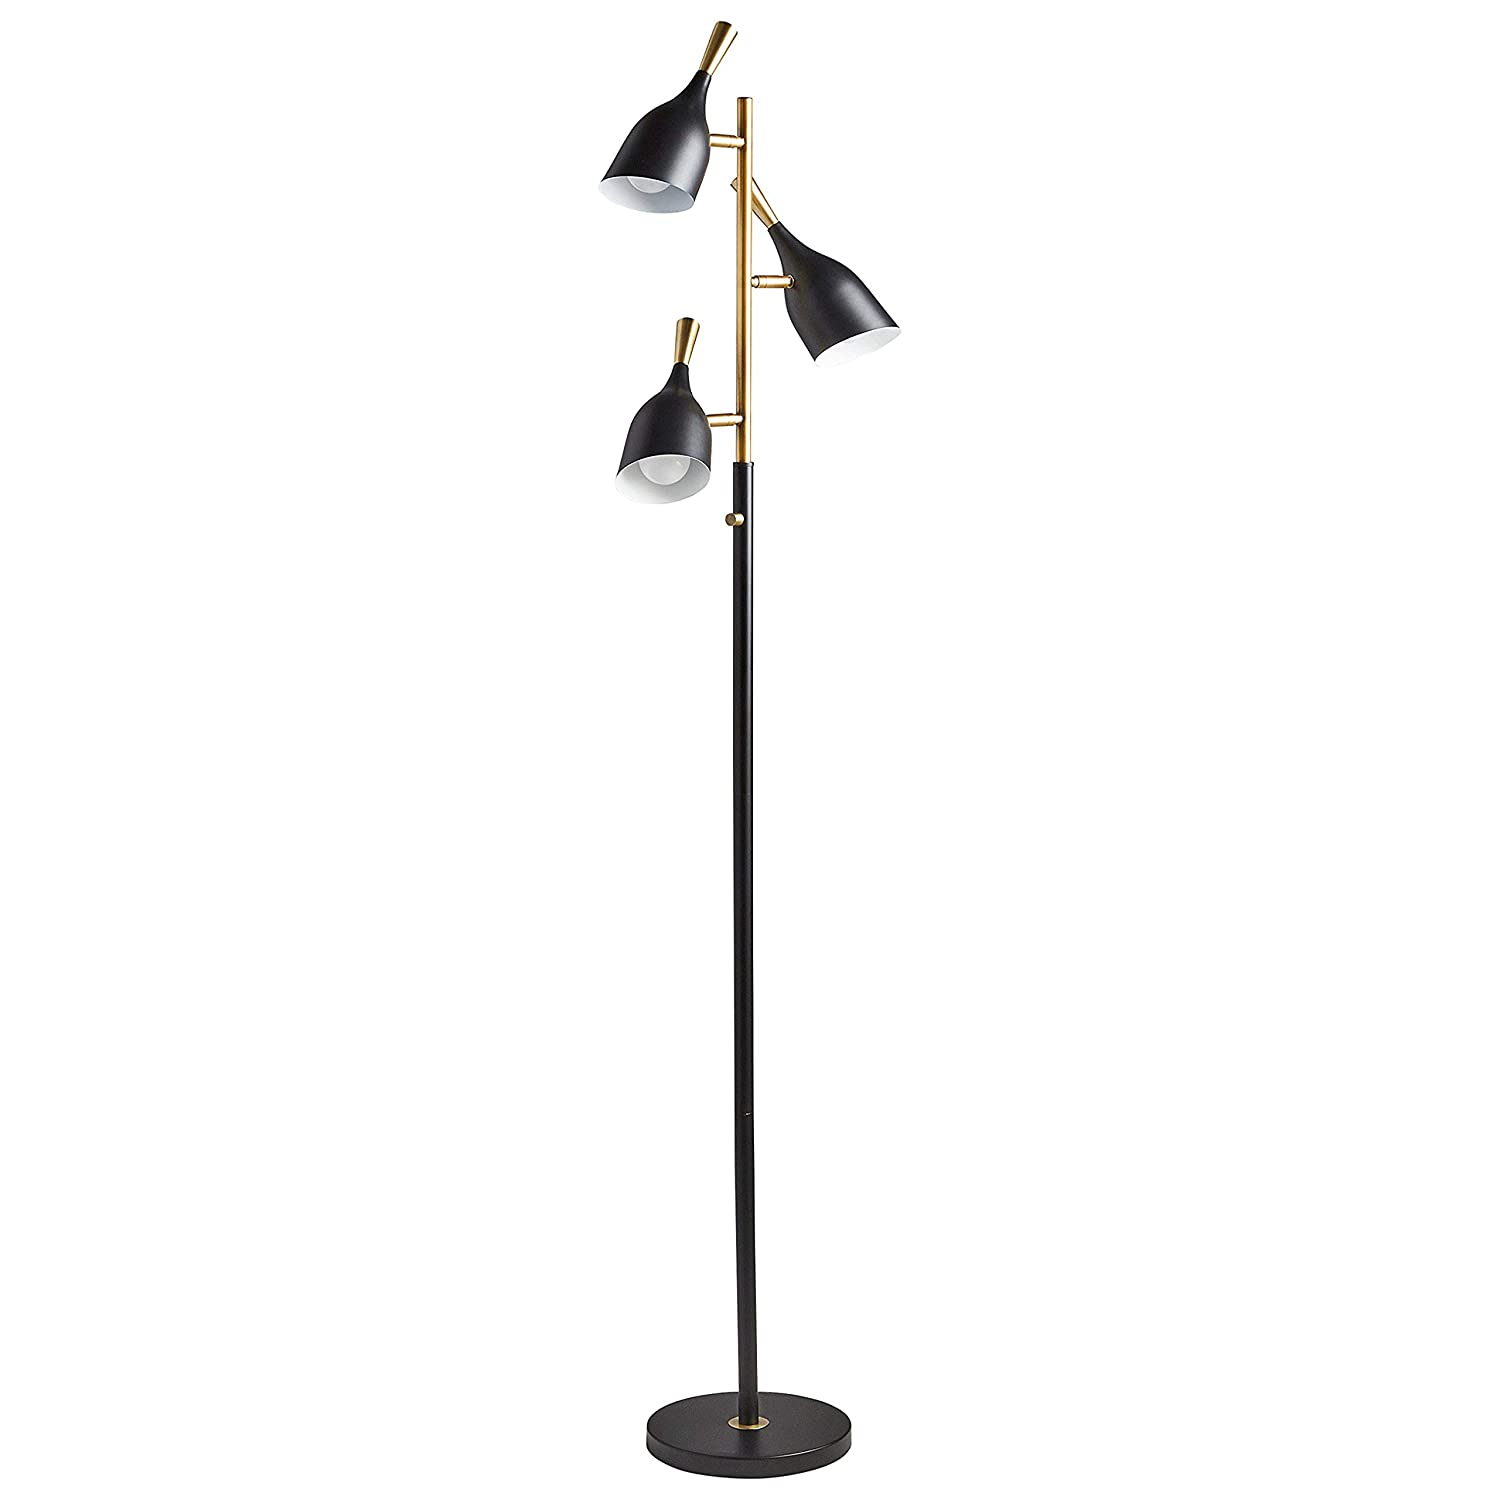 "Rivet Mid-Century Modern Task Lamp, 67""H, With Bulb, Matte Black & Brushed Steel Accents"